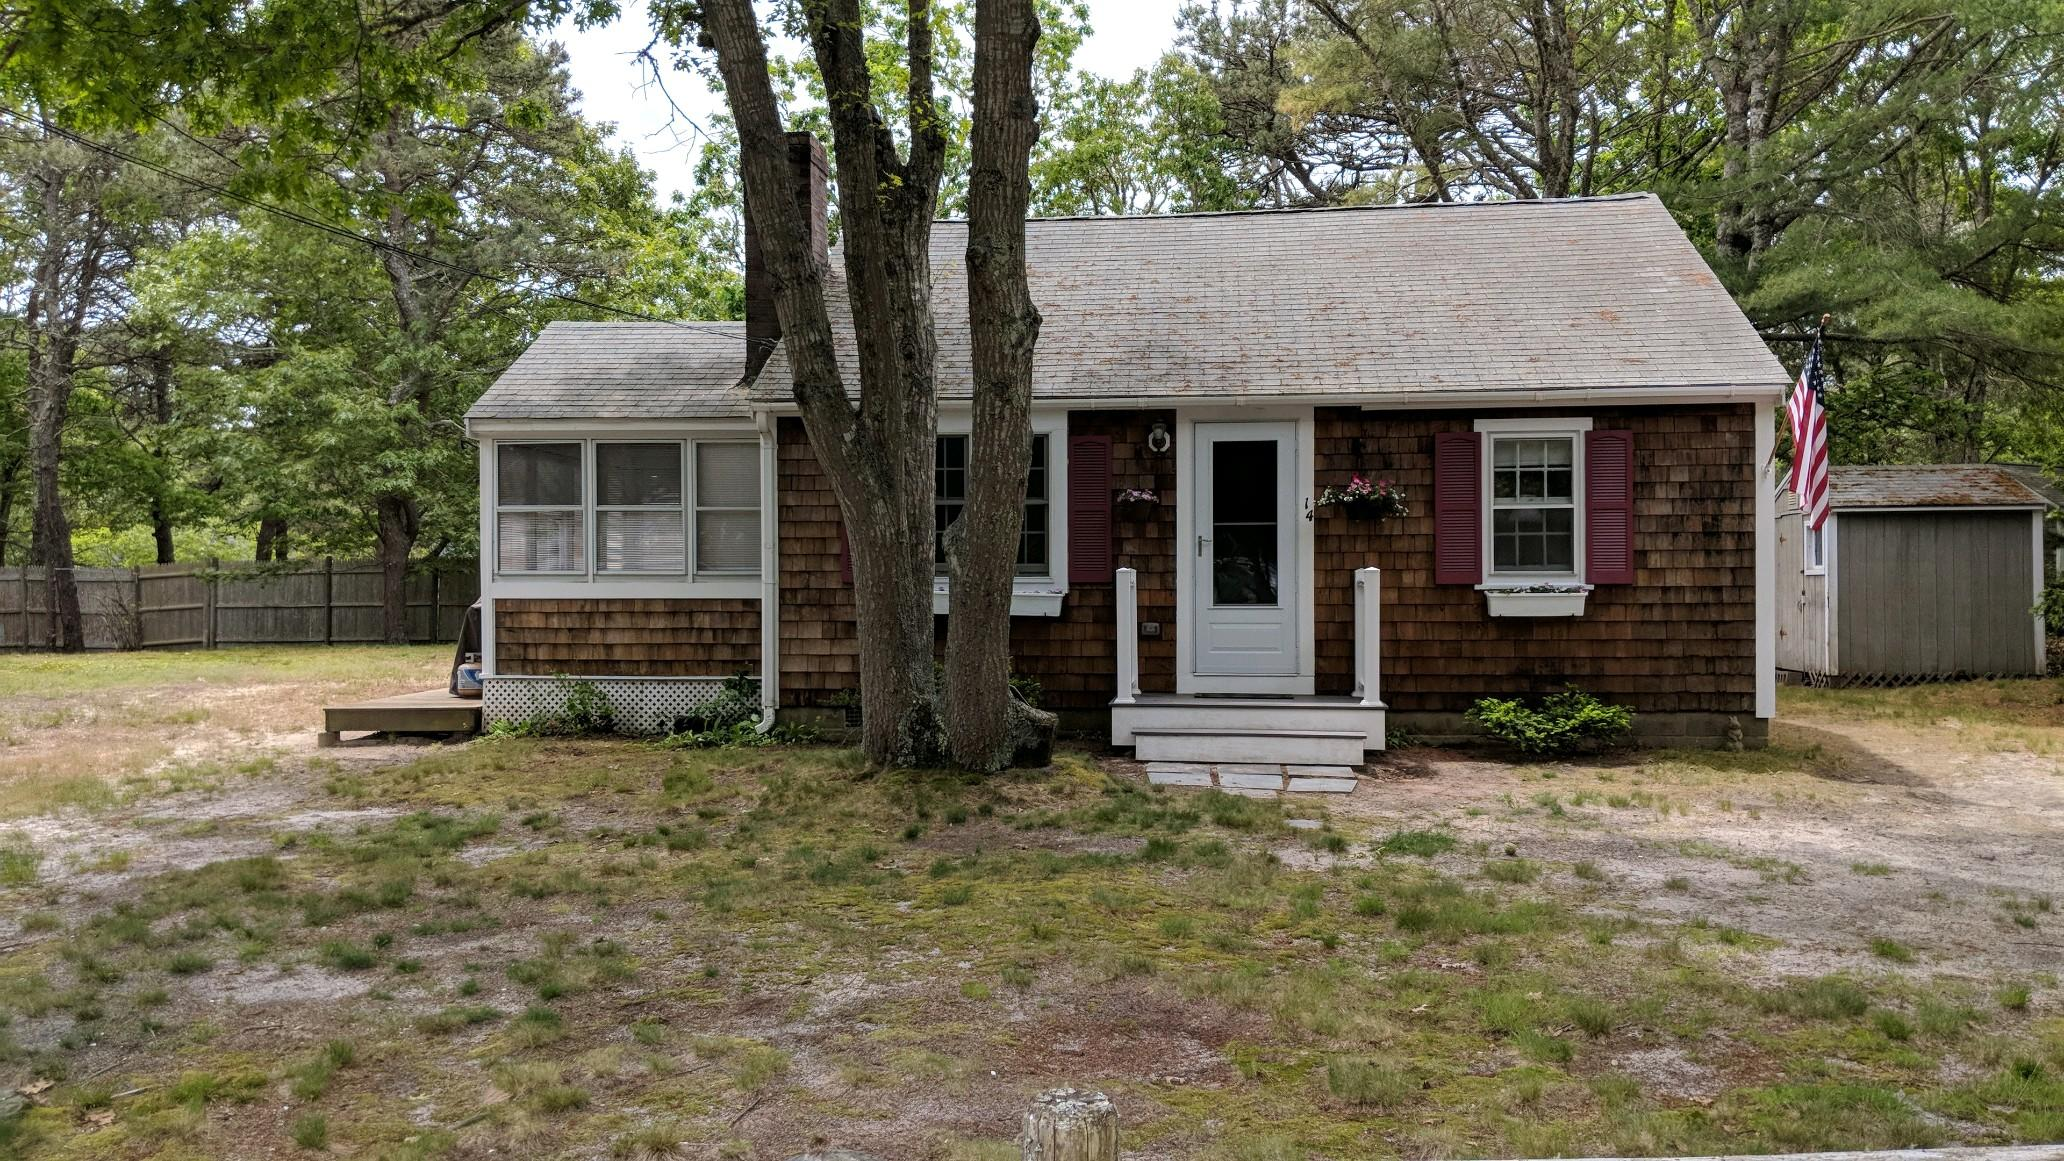 14 Bunny Circle, West Yarmouth MA, 02673 details